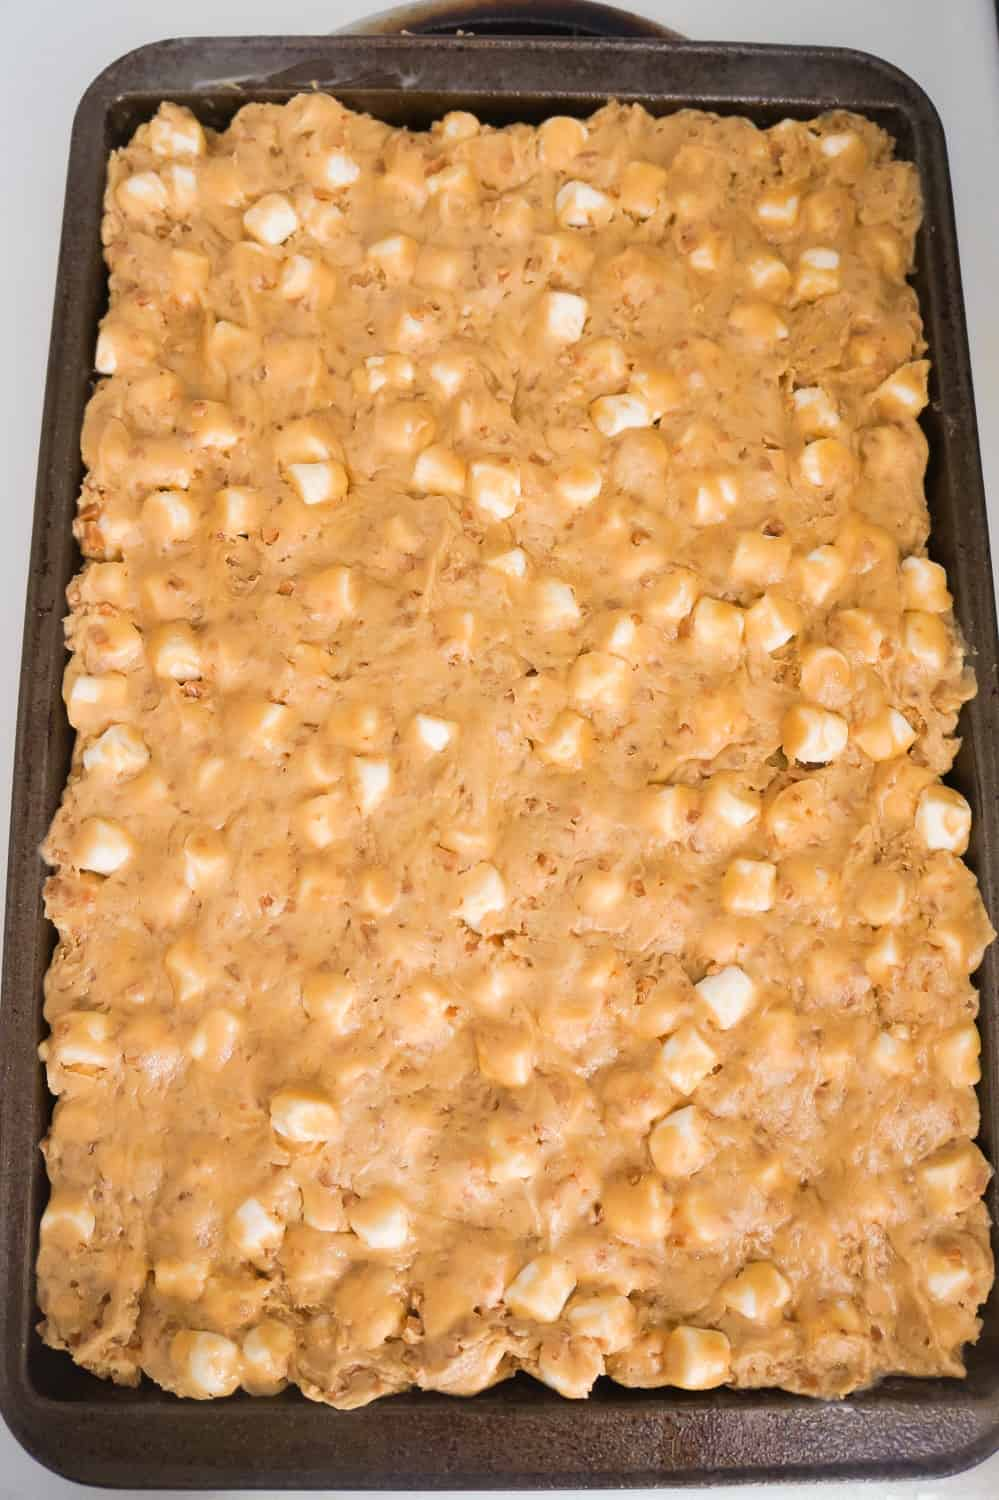 peanut butter marshmallow cookie dough spread out on baking sheet